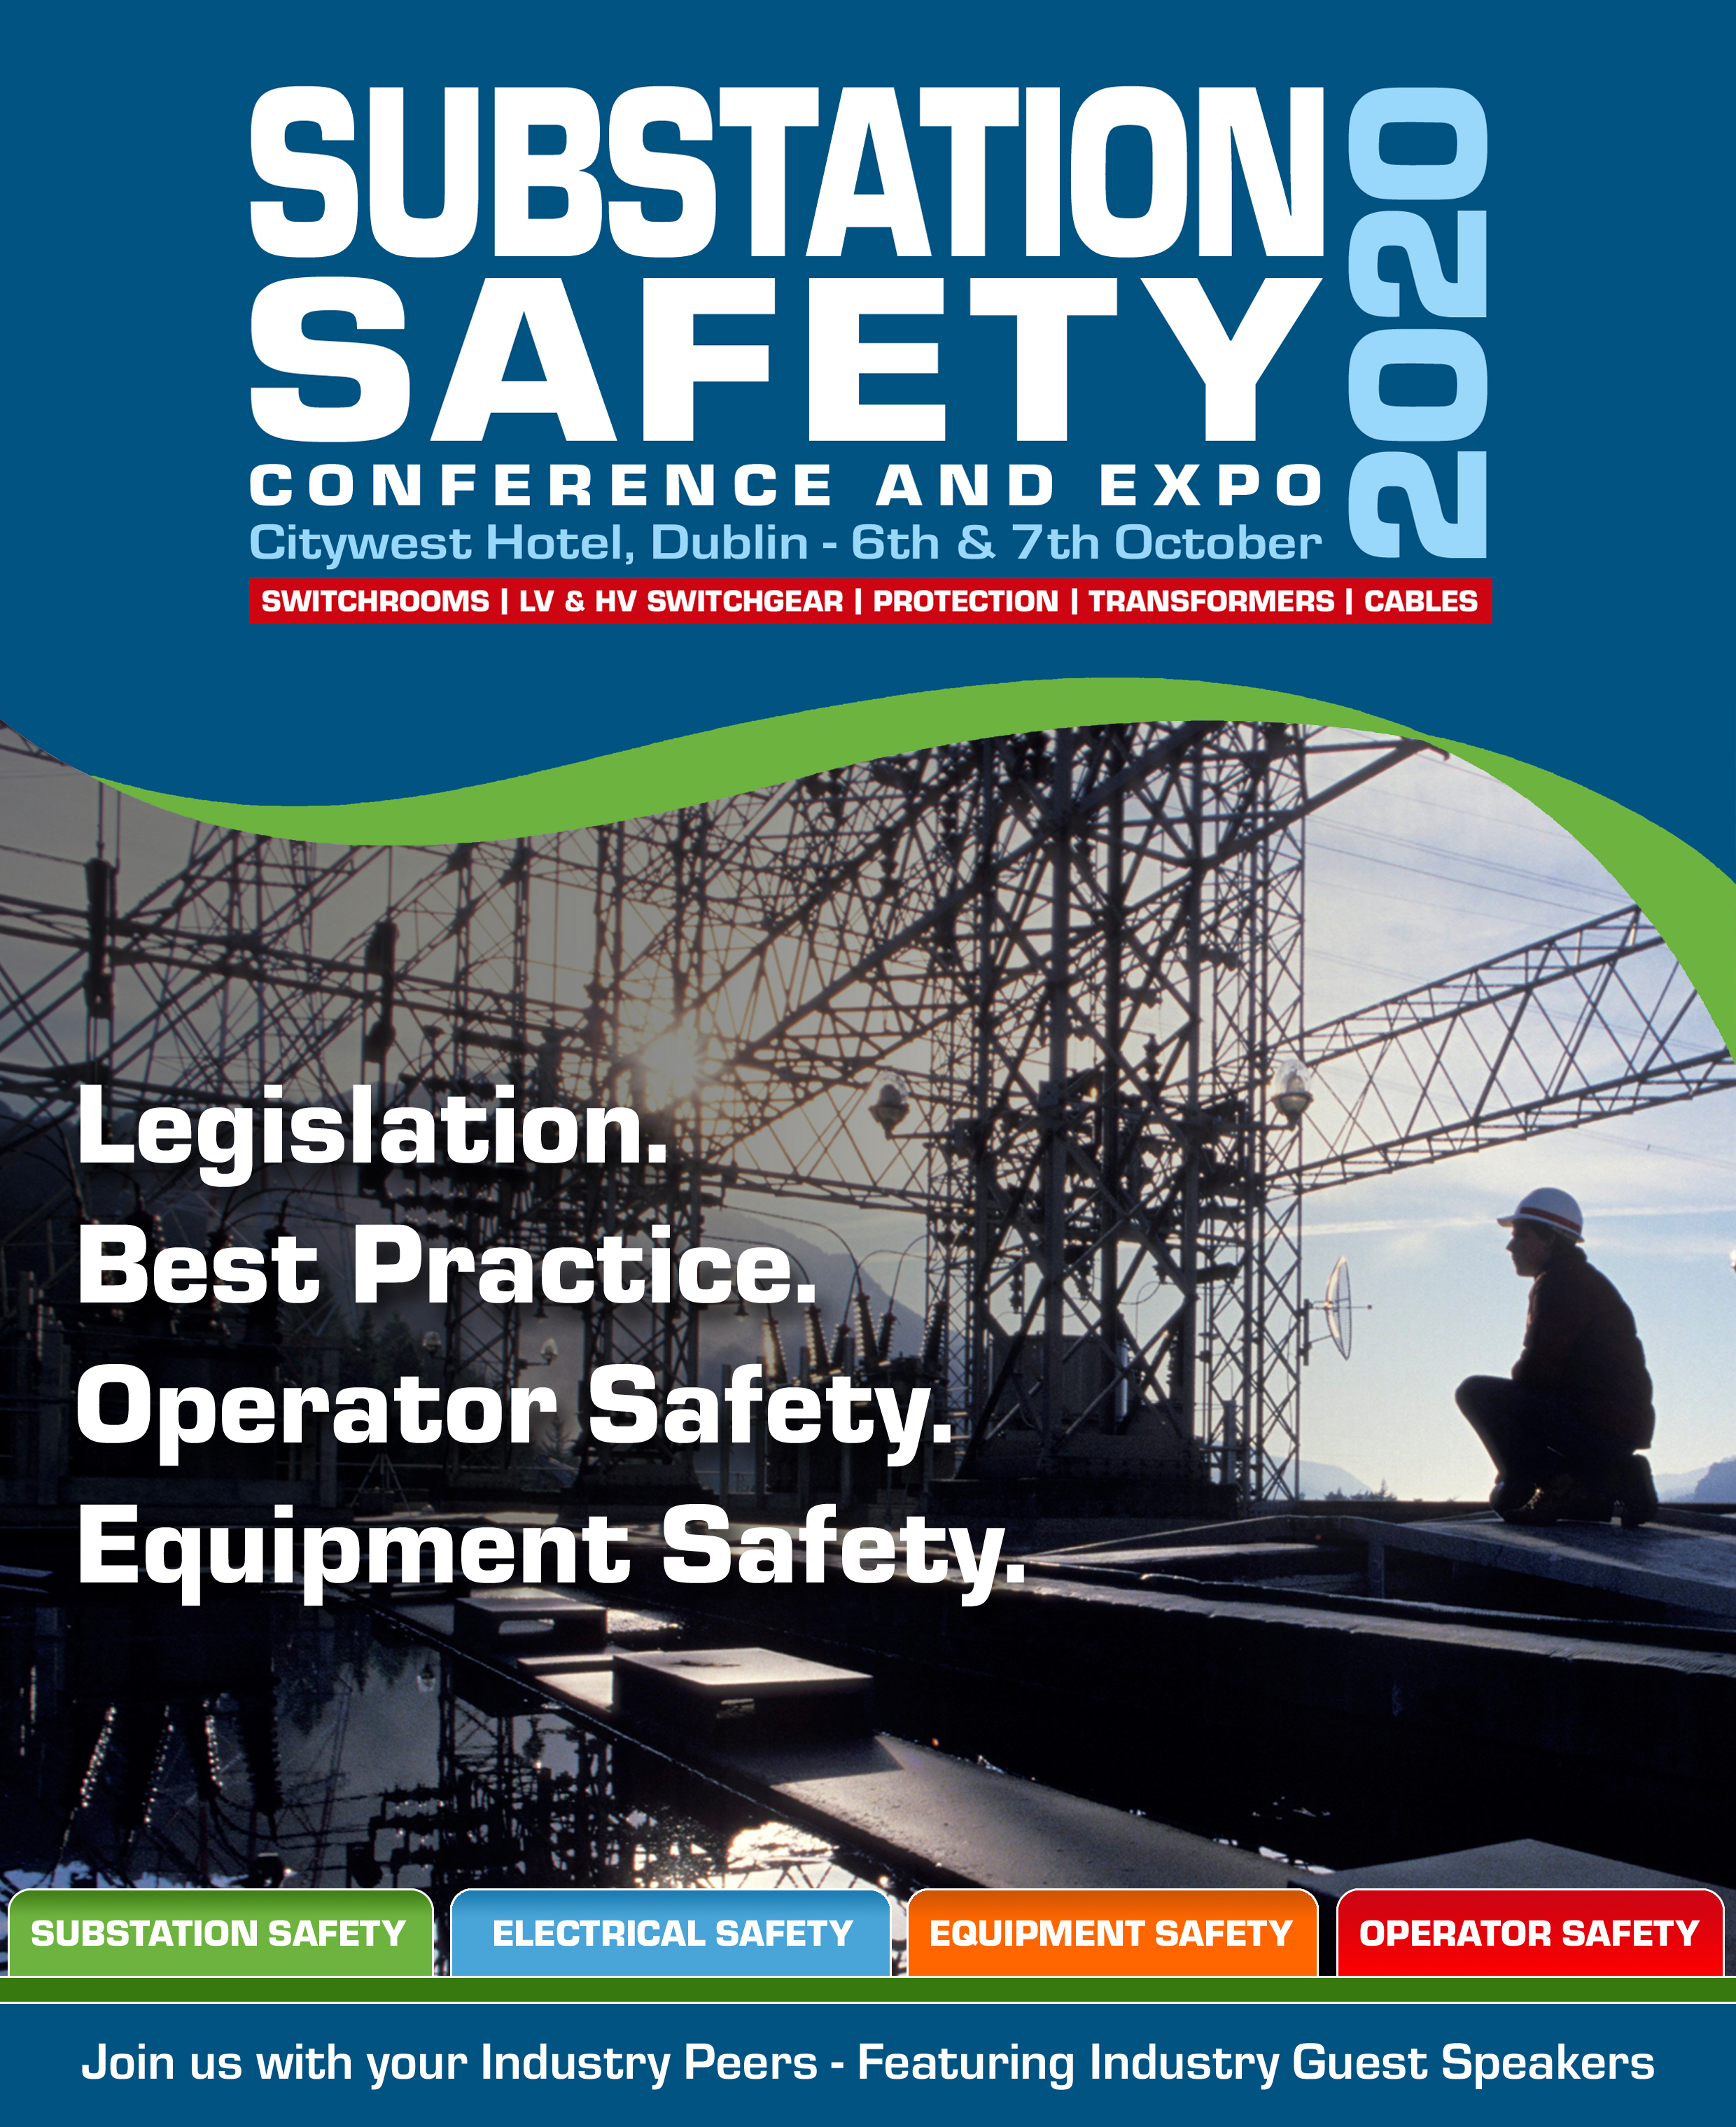 Substation Safety Expo 2019 Prospectus